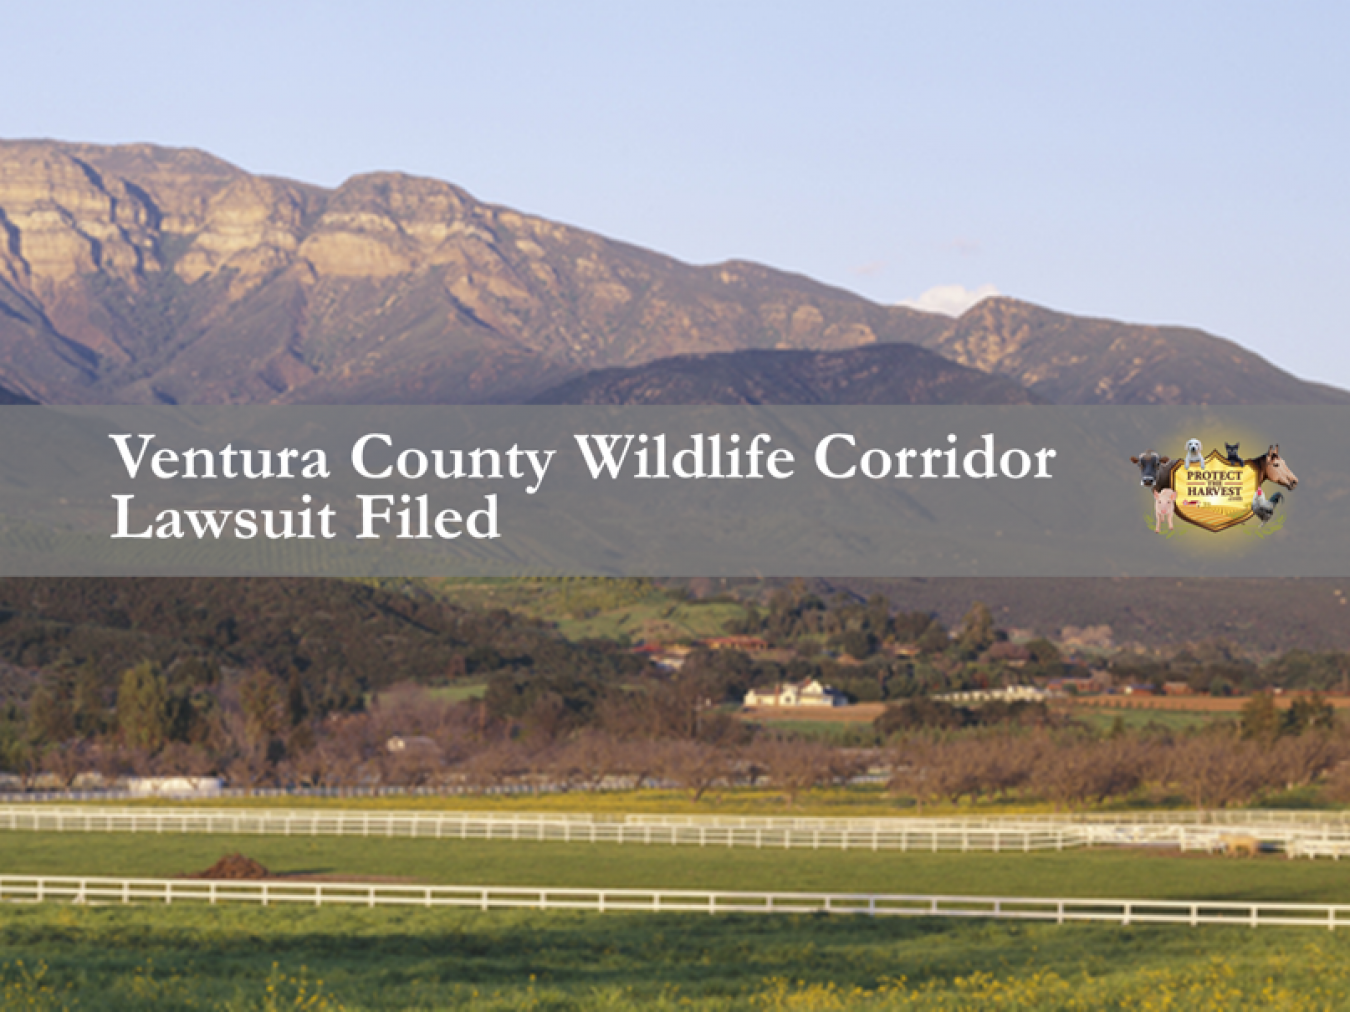 Ventura County Wildlife Corridor Update - Lawsuit Filed